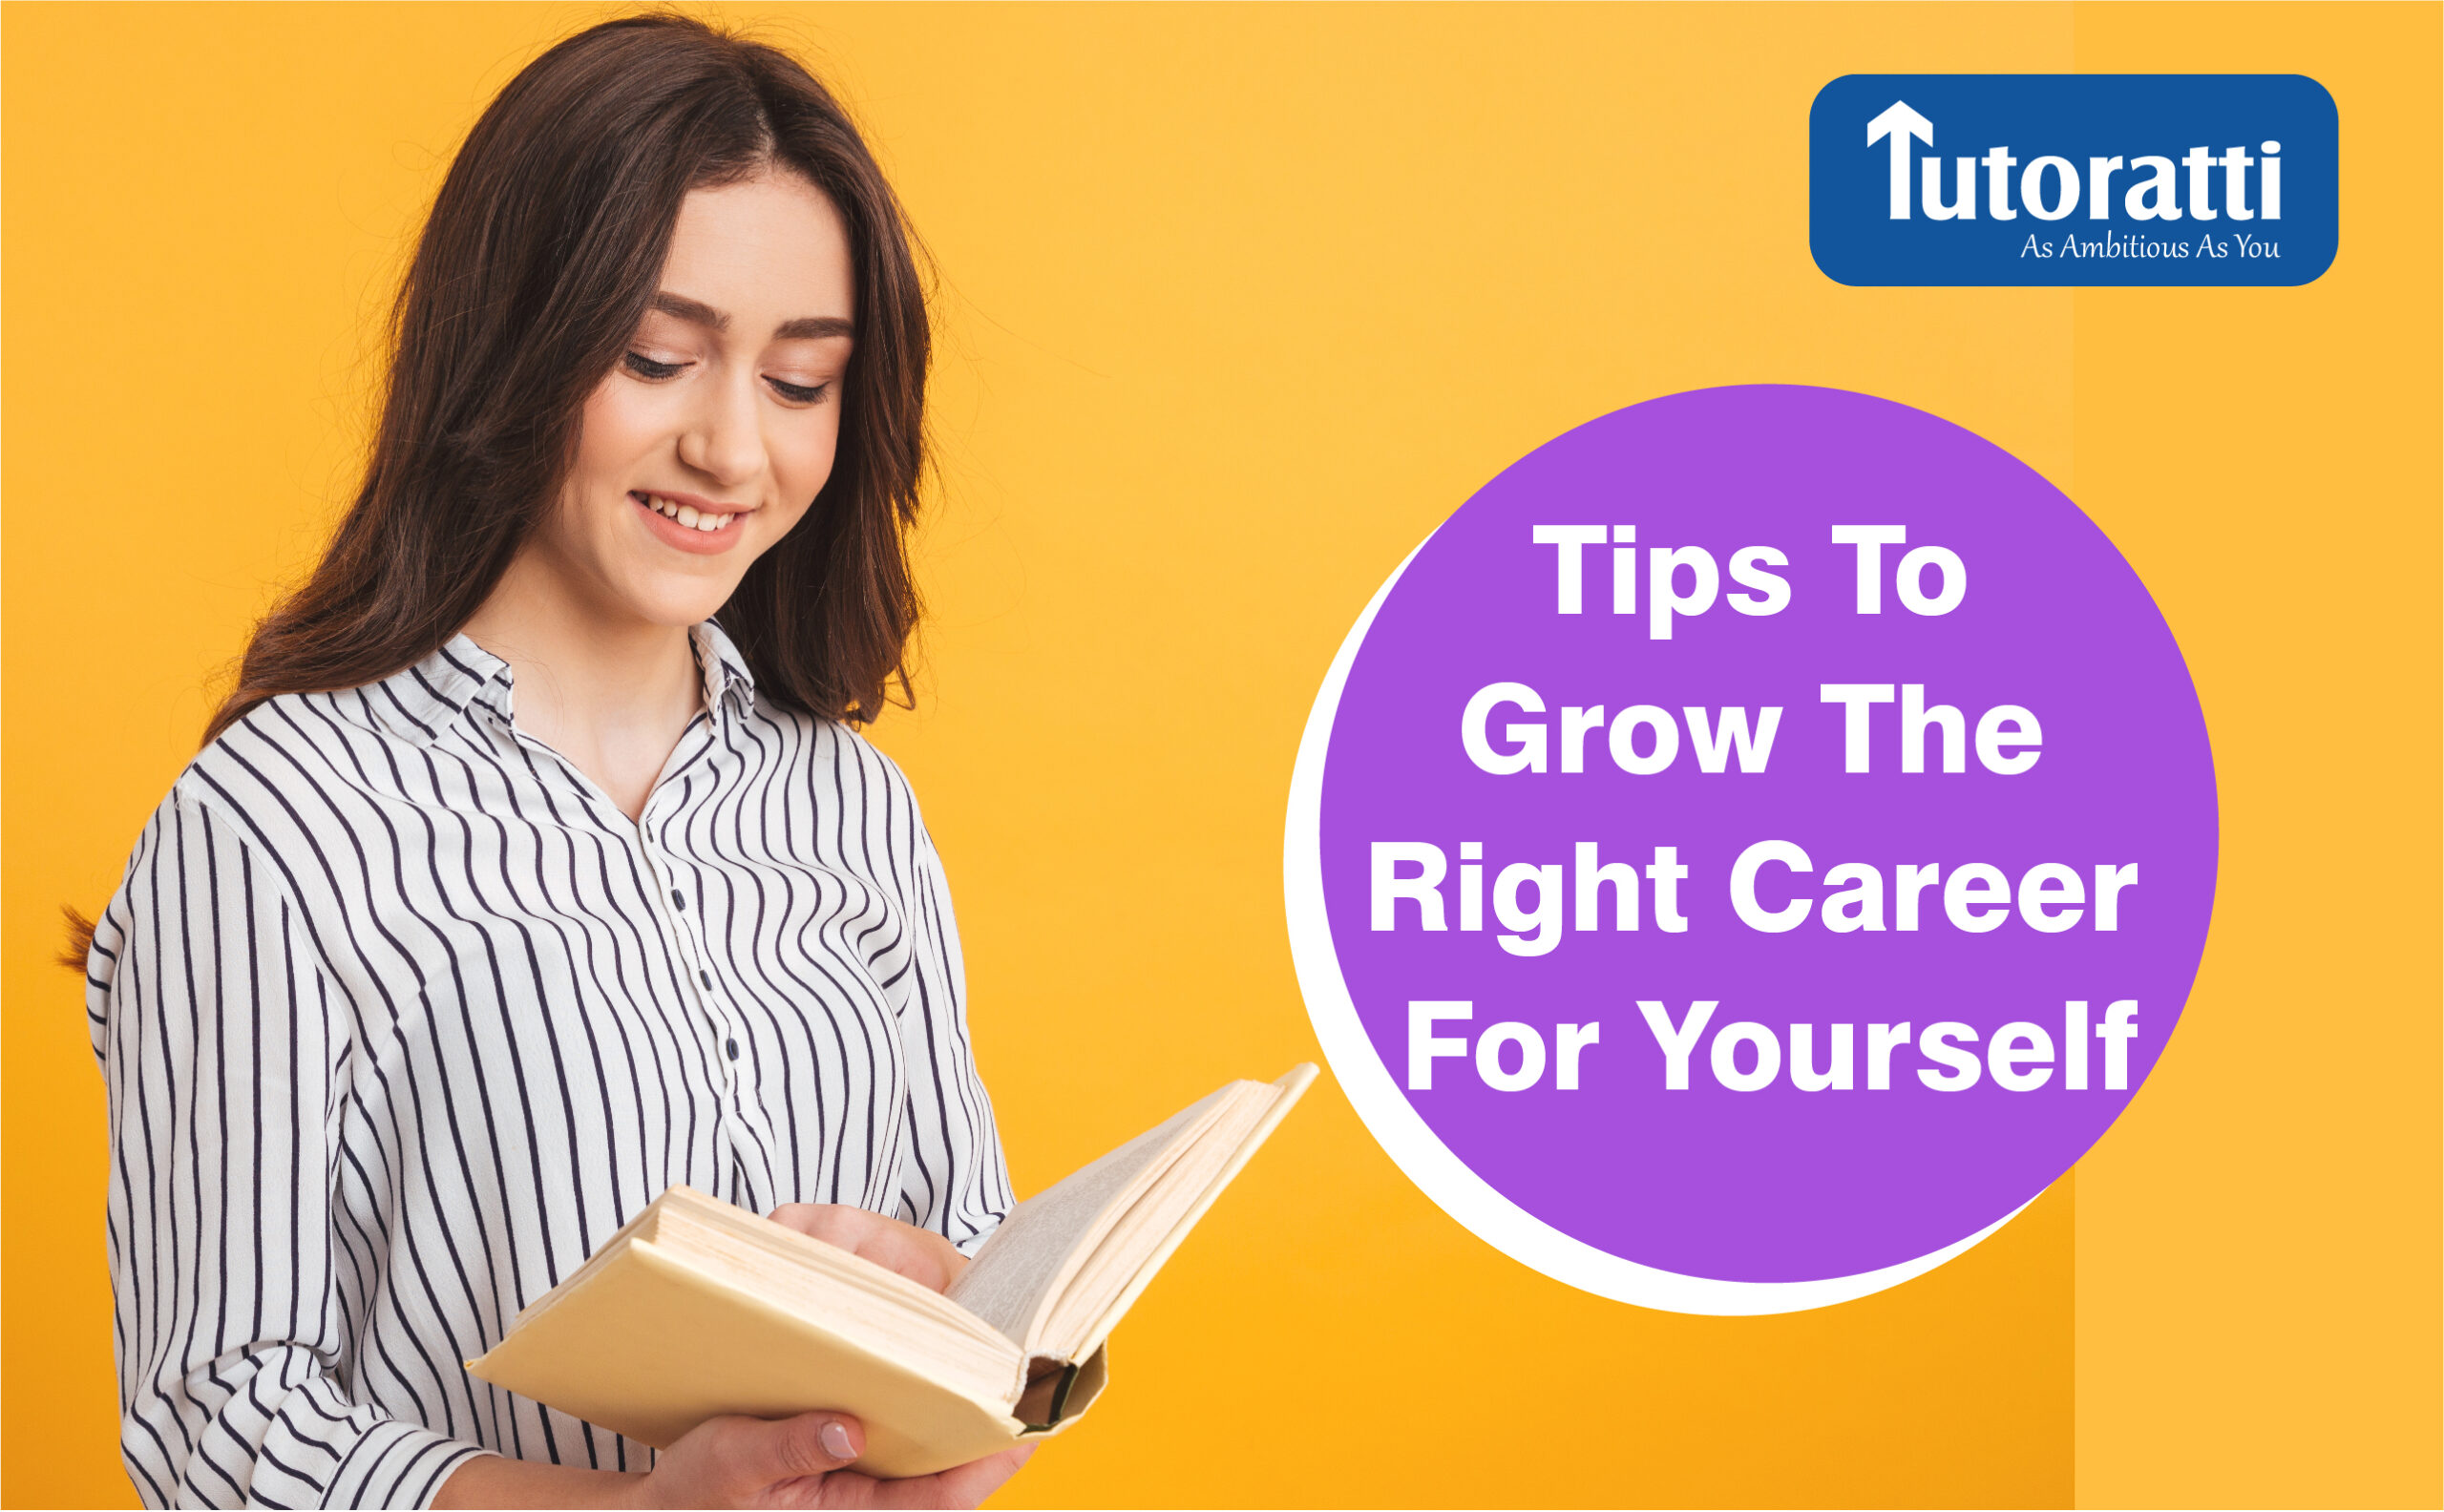 Cracking The Career Code: Tips To Choose The Right Career For Yourself